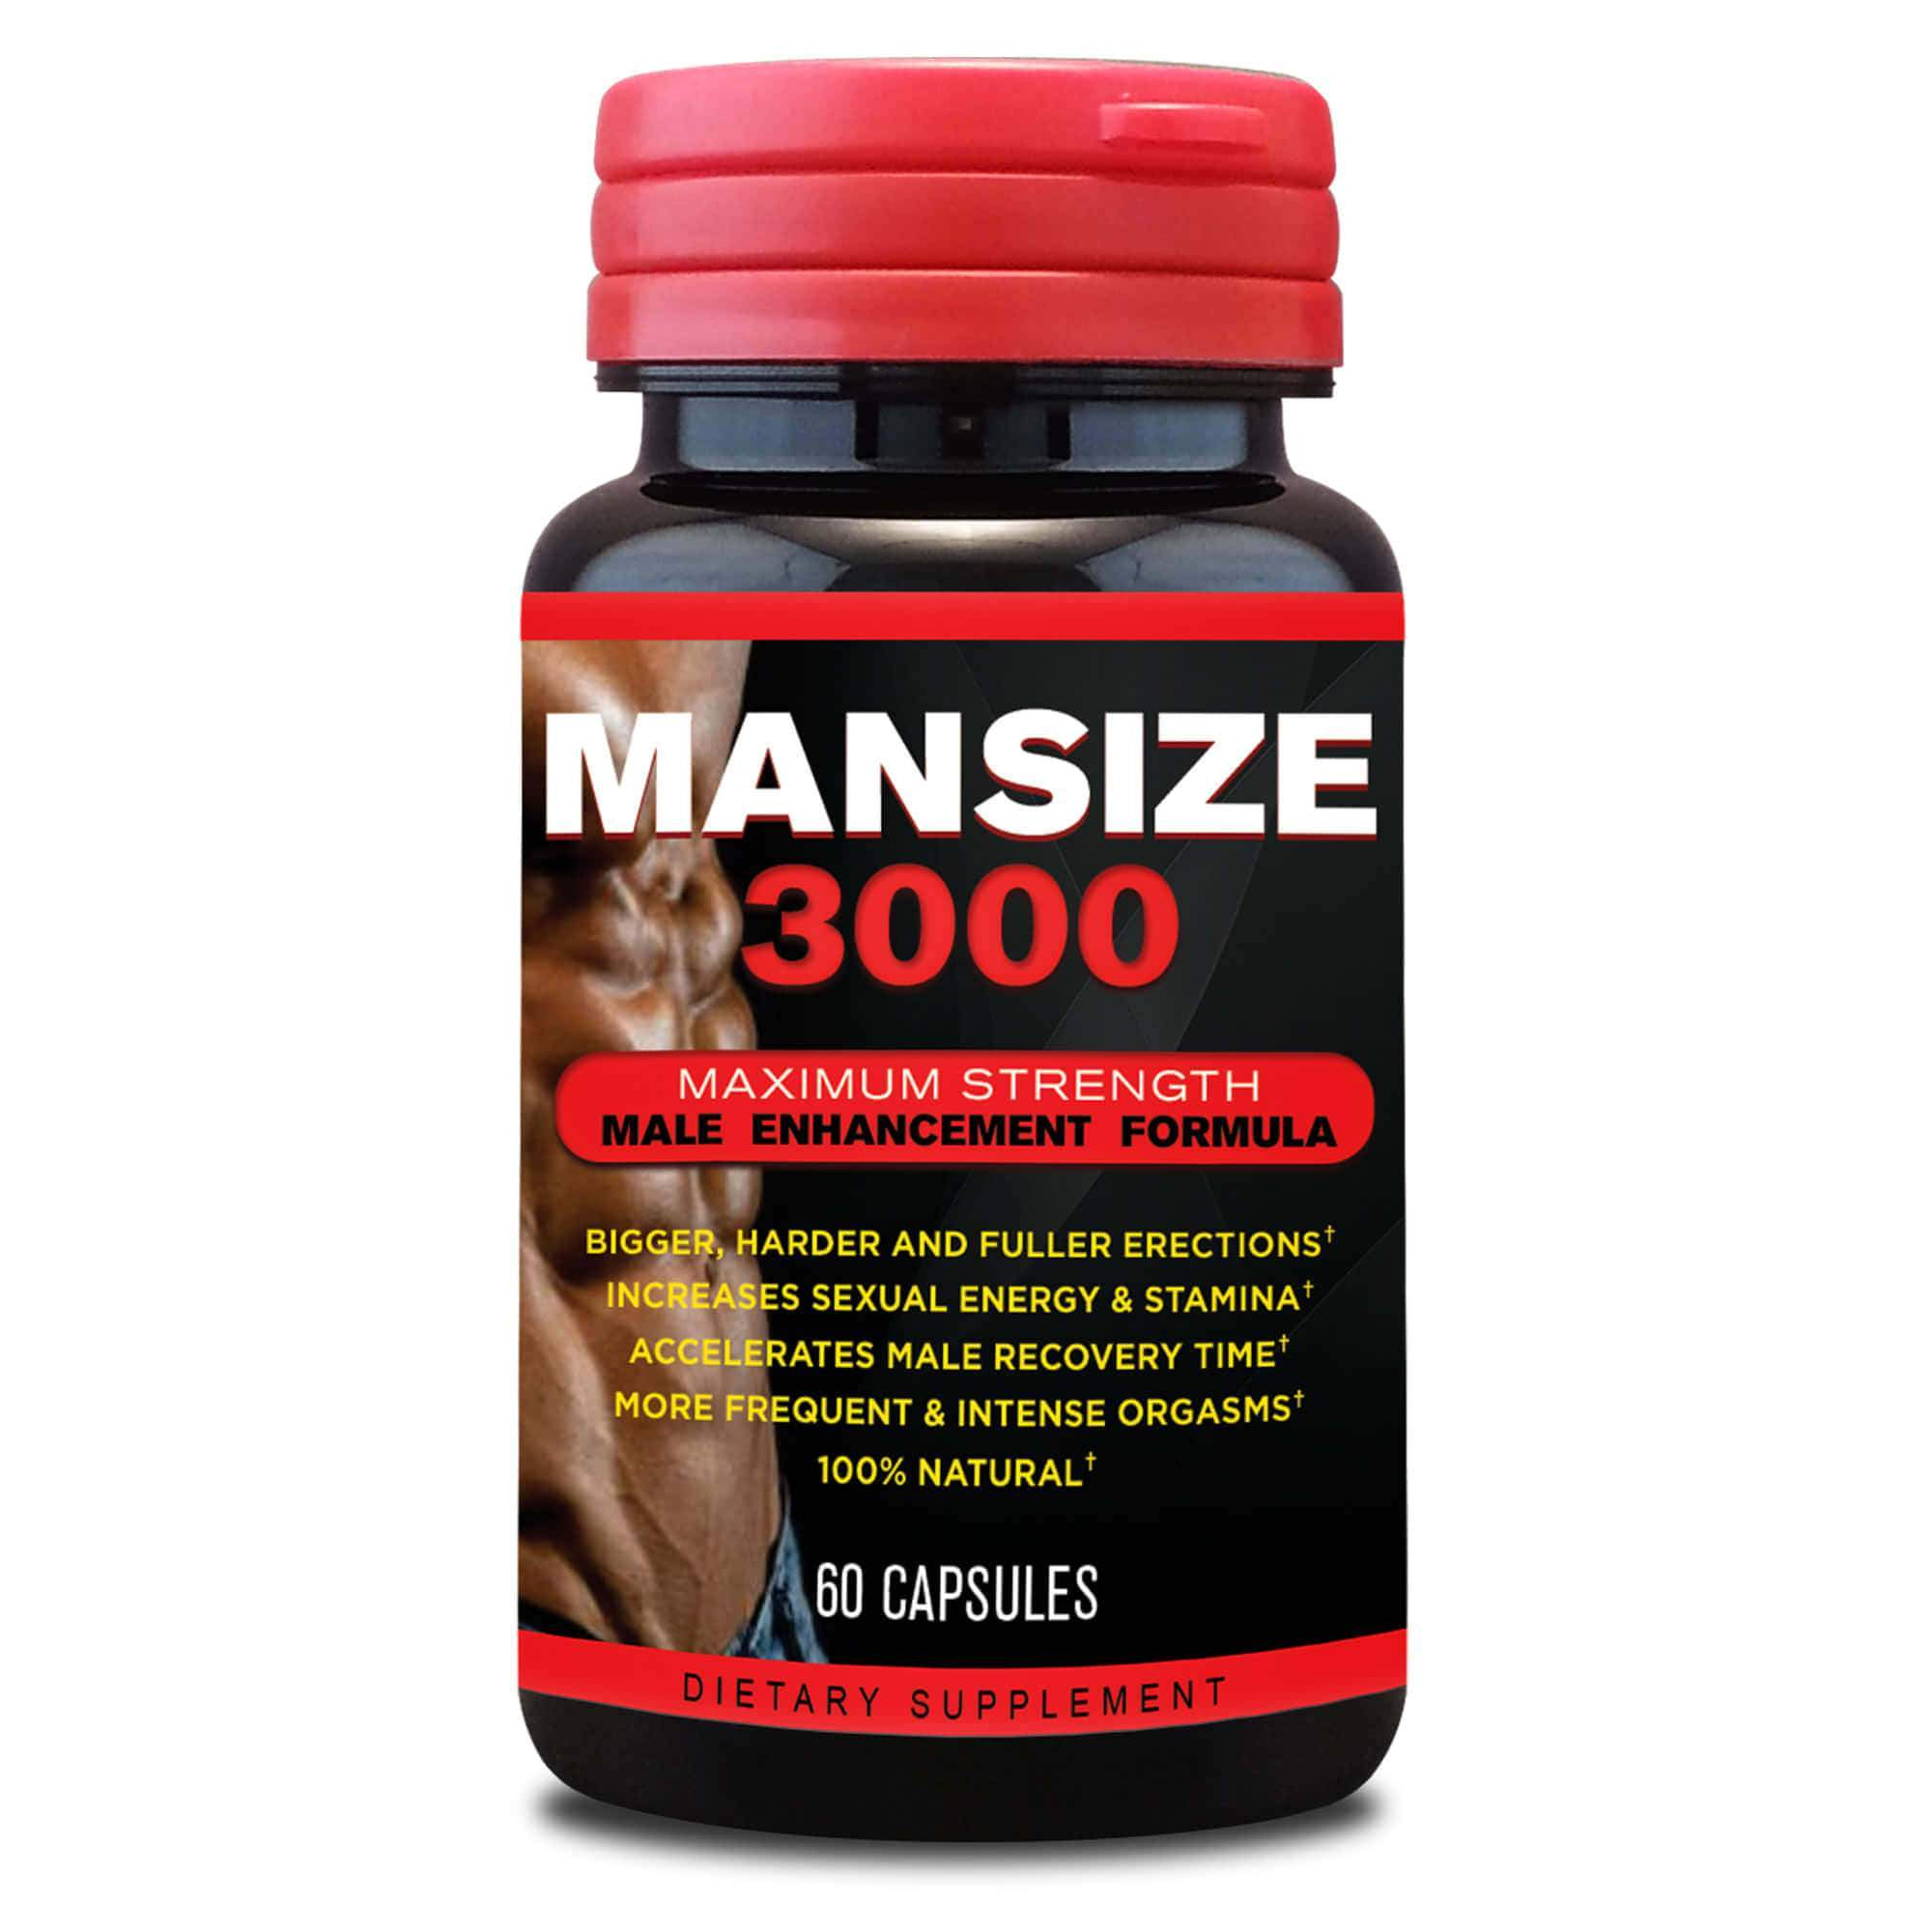 MANSIZE 3000 - Best Male Enhancement Pills